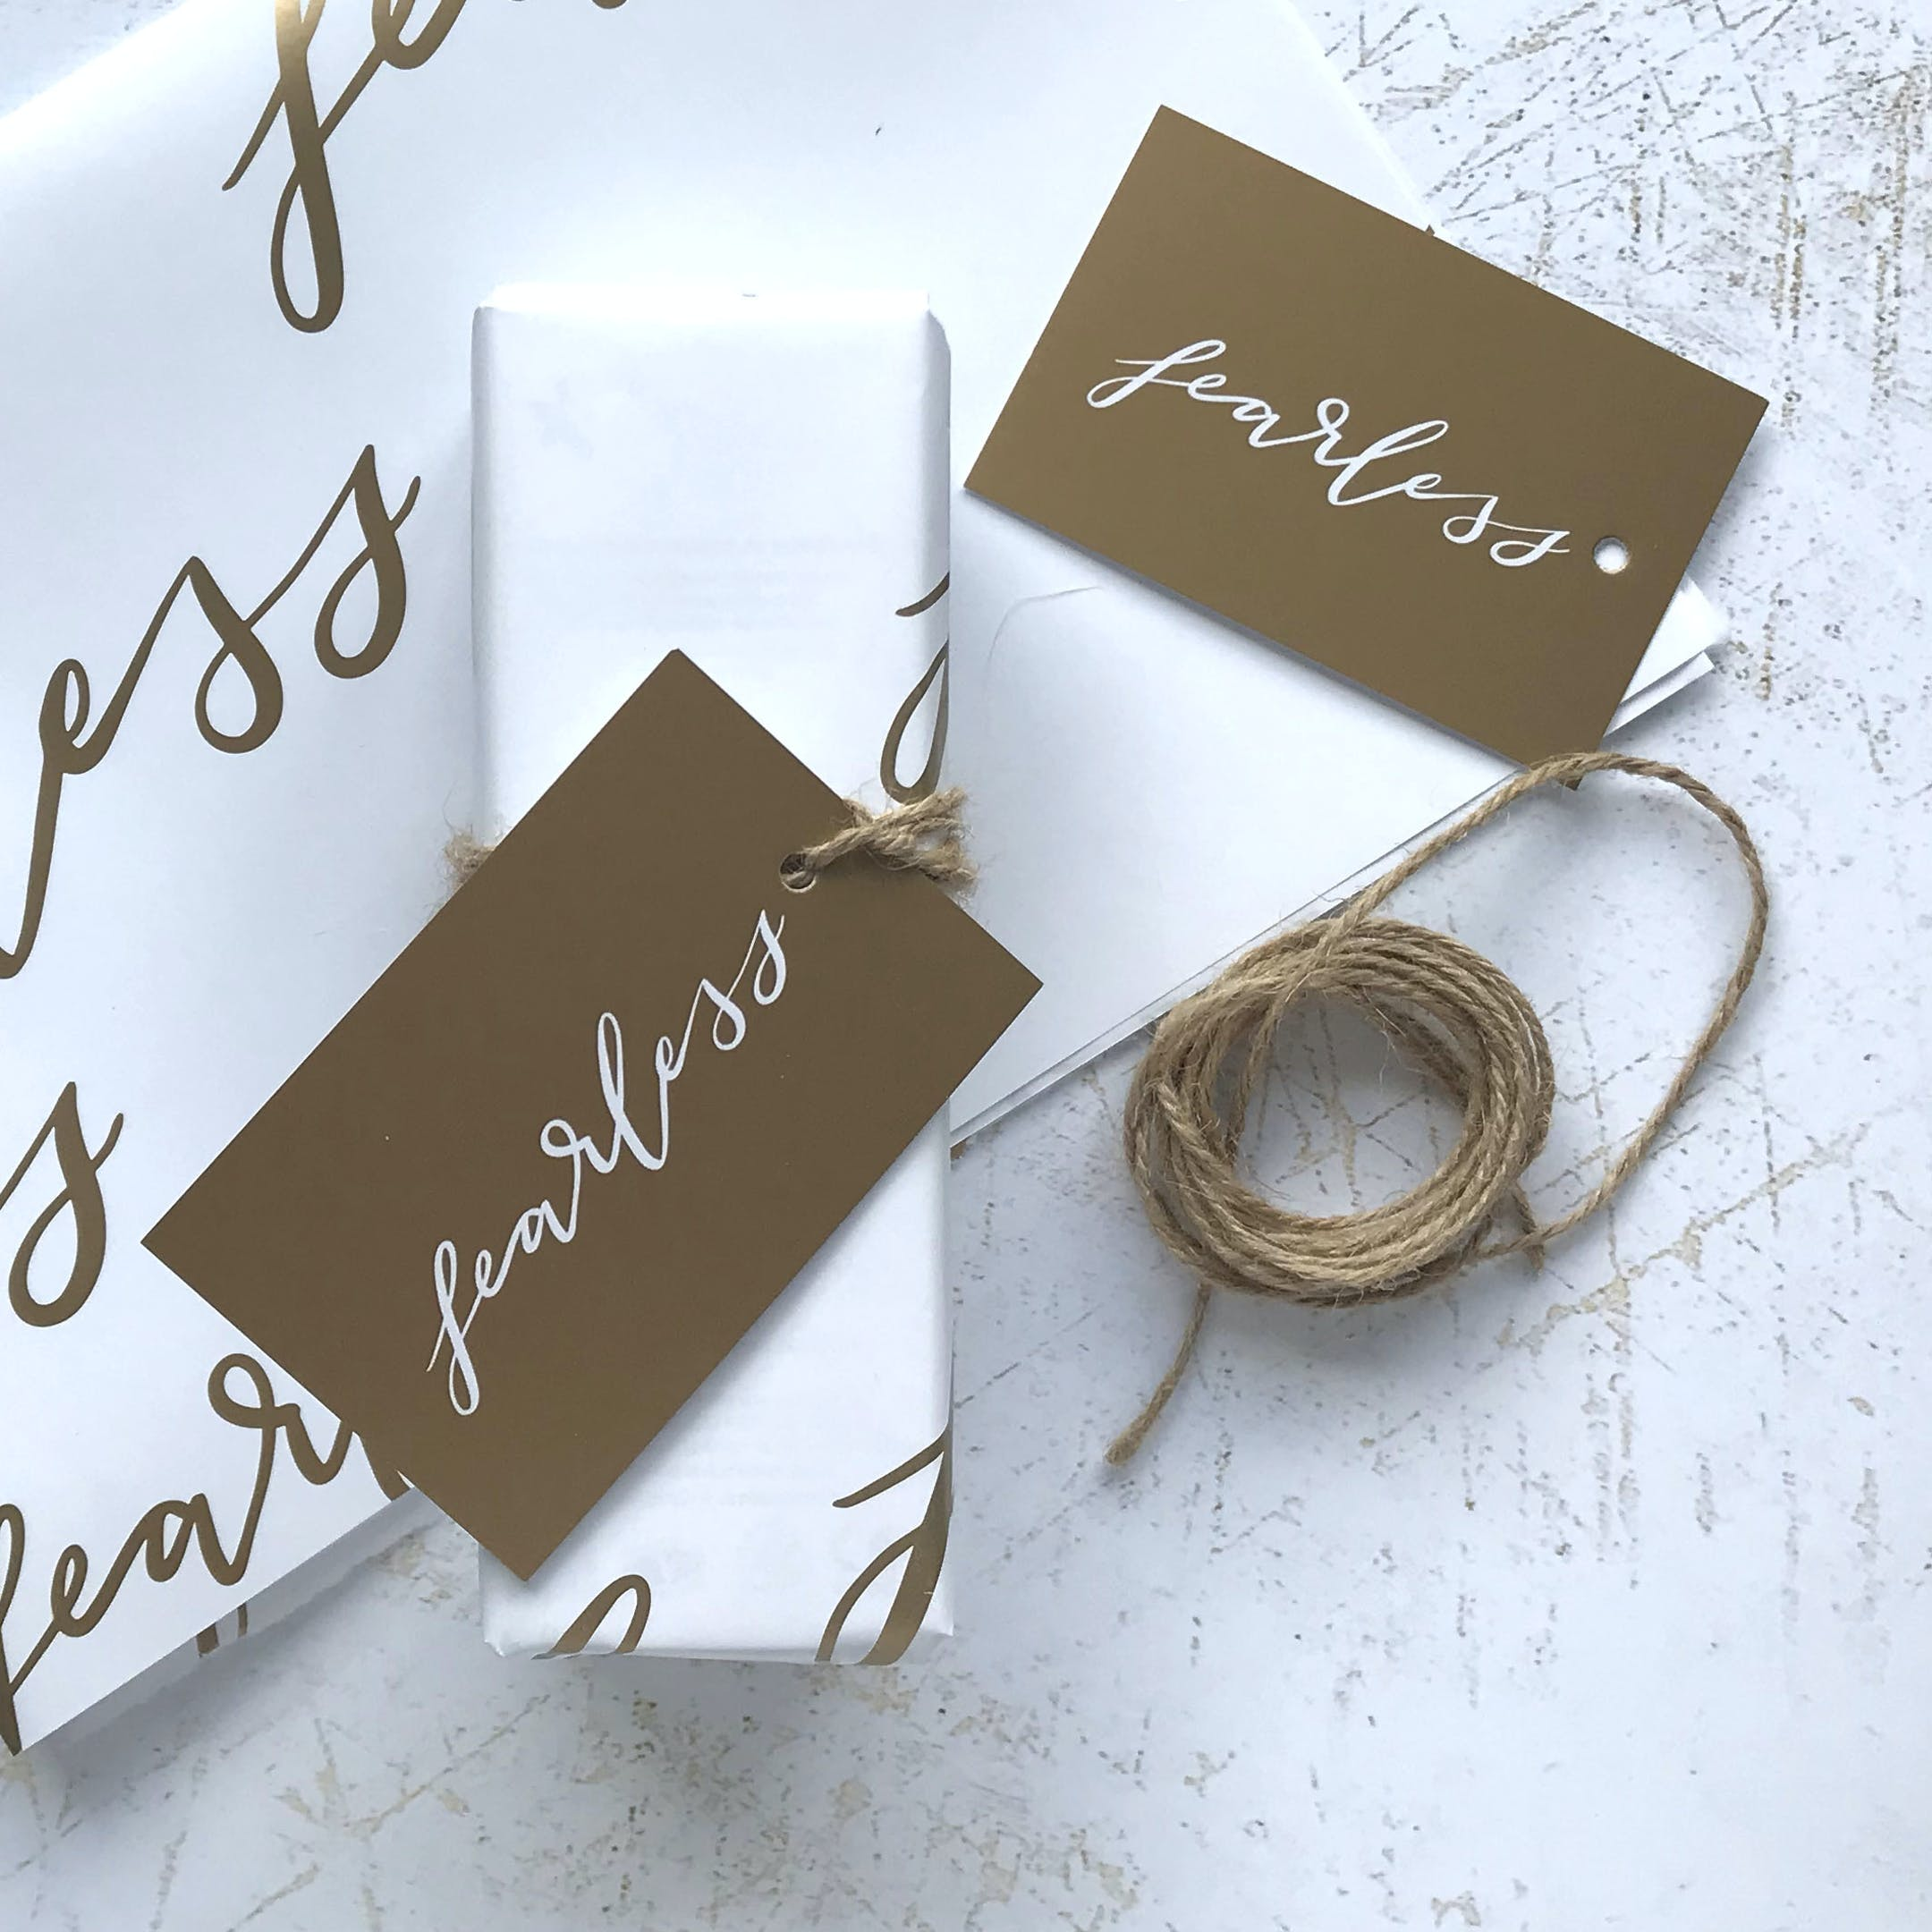 Fearless Christian Gift Wrapping Set   Christian Lettering Company   Cheerfully Given